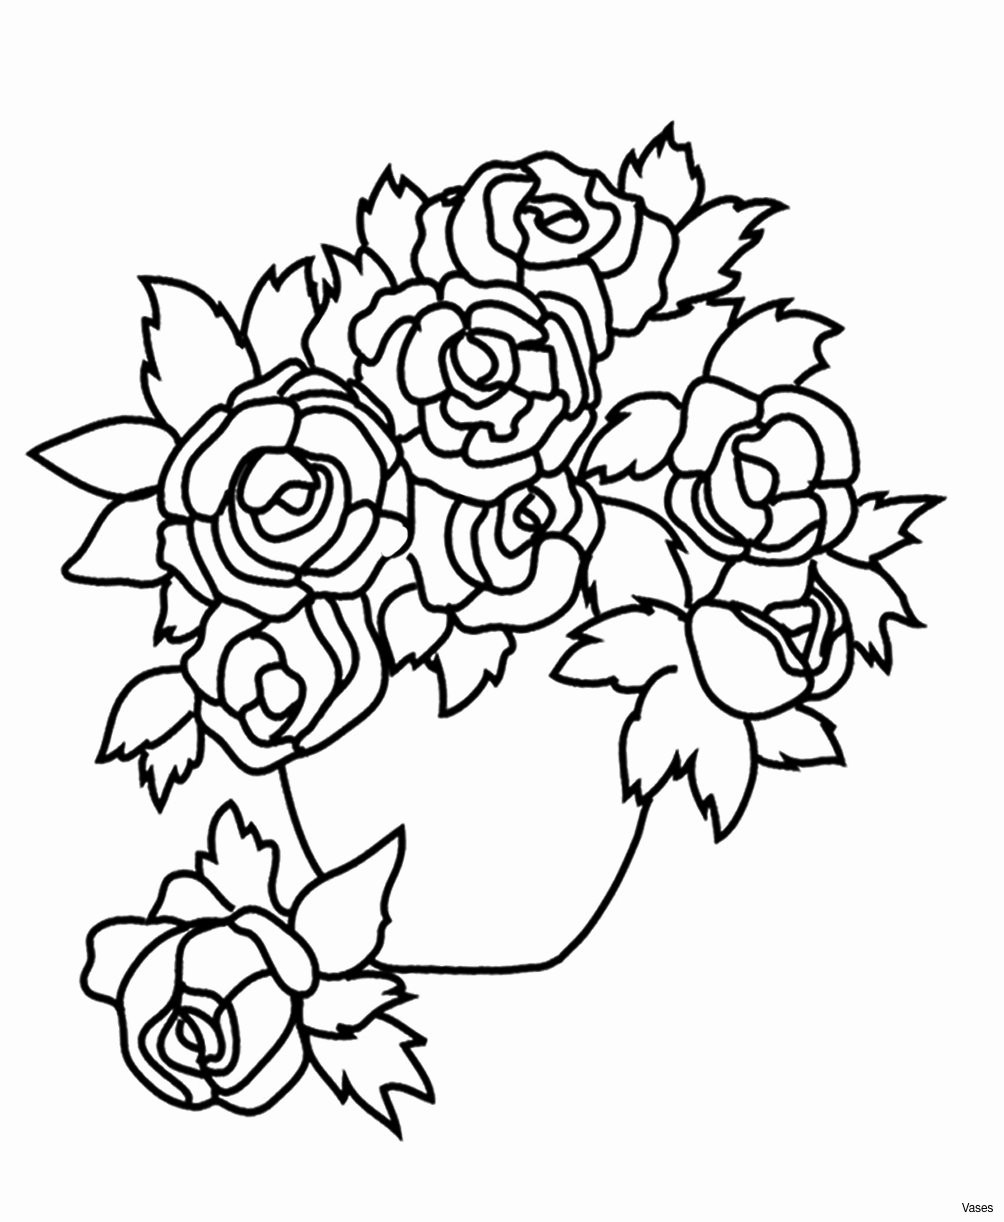 red flowers in vase of unique cool vases flower vase coloring page pages flowers in a top i in unique cool vases flower vase coloring page pages flowers in a top i 0d